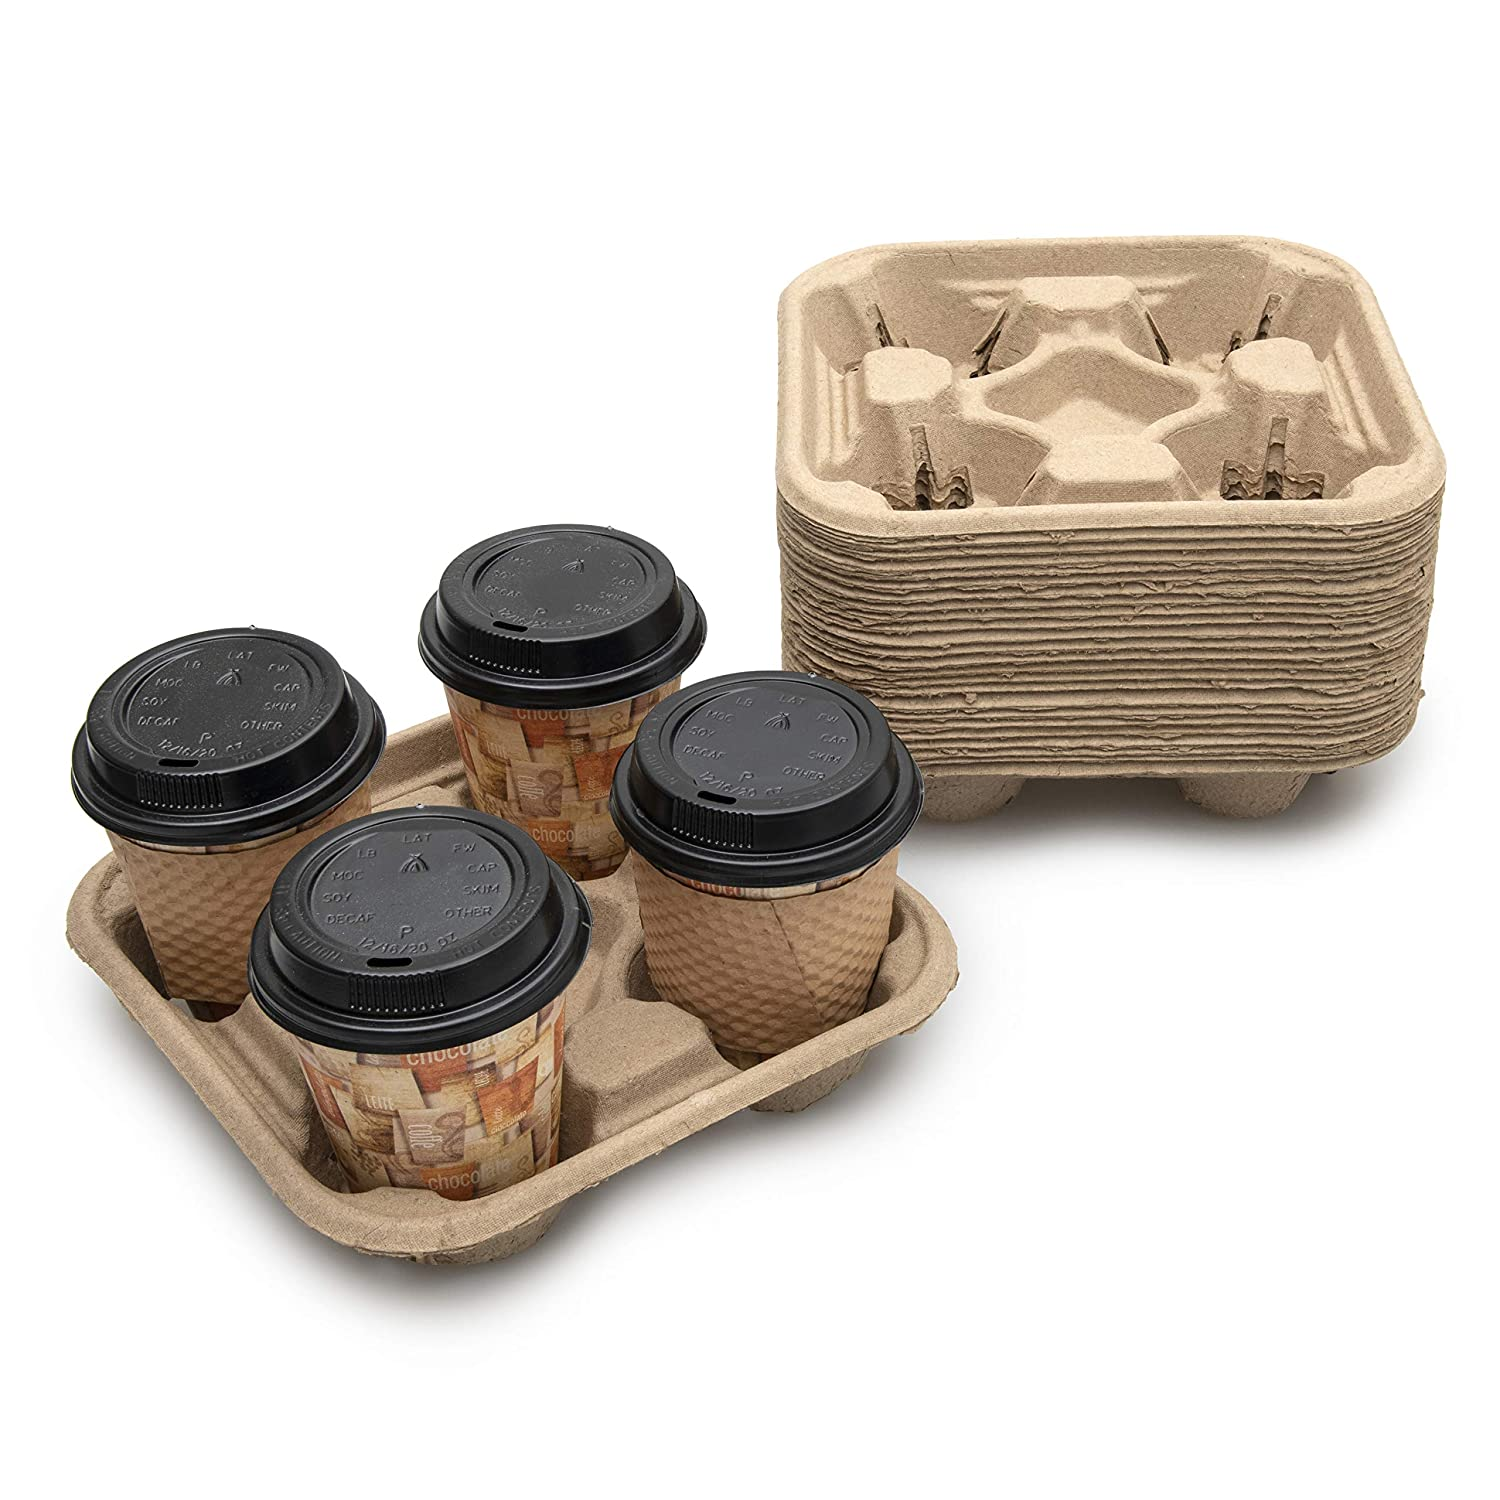 FYNIST 4 Cup Disposable Coffee Tray (Pack of 25) - Biodegradable and Stackable Drink Carrier - Cup Holder for Hot and Cold Drinks - Ideal for Food Delivery, Takeout, and to Go Services